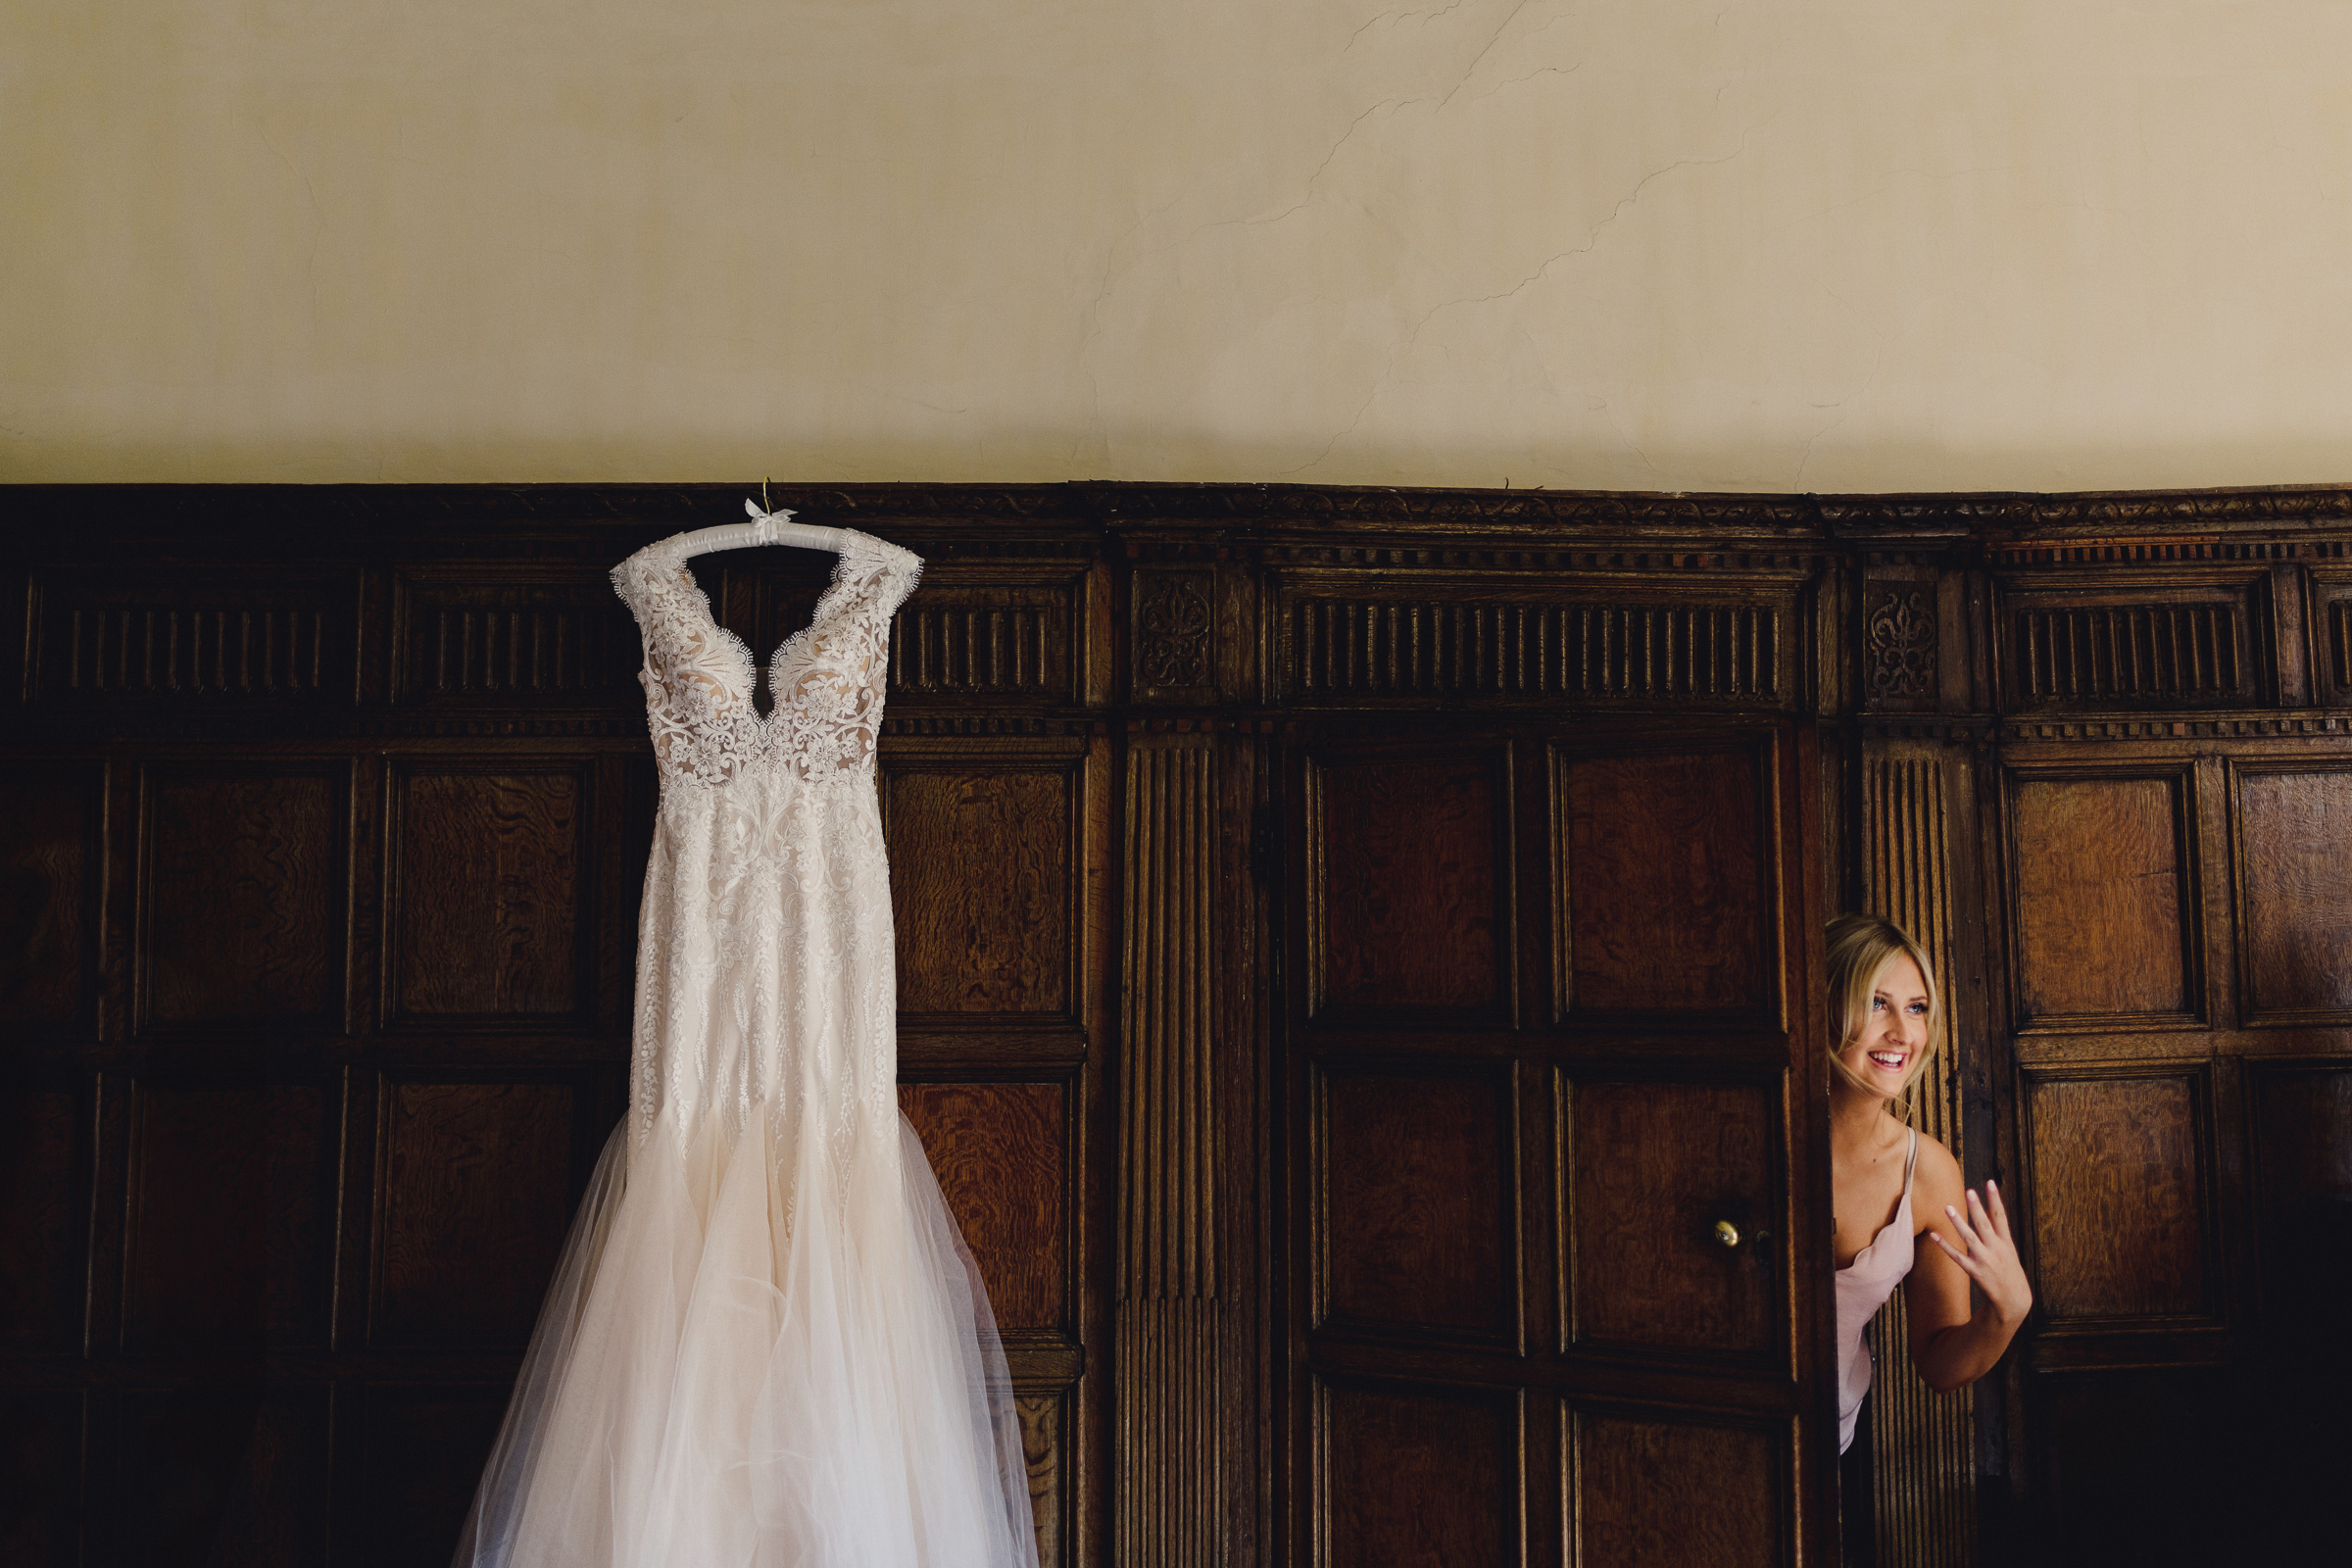 Bride fetching her gown - photo by MIKI STUDIOS